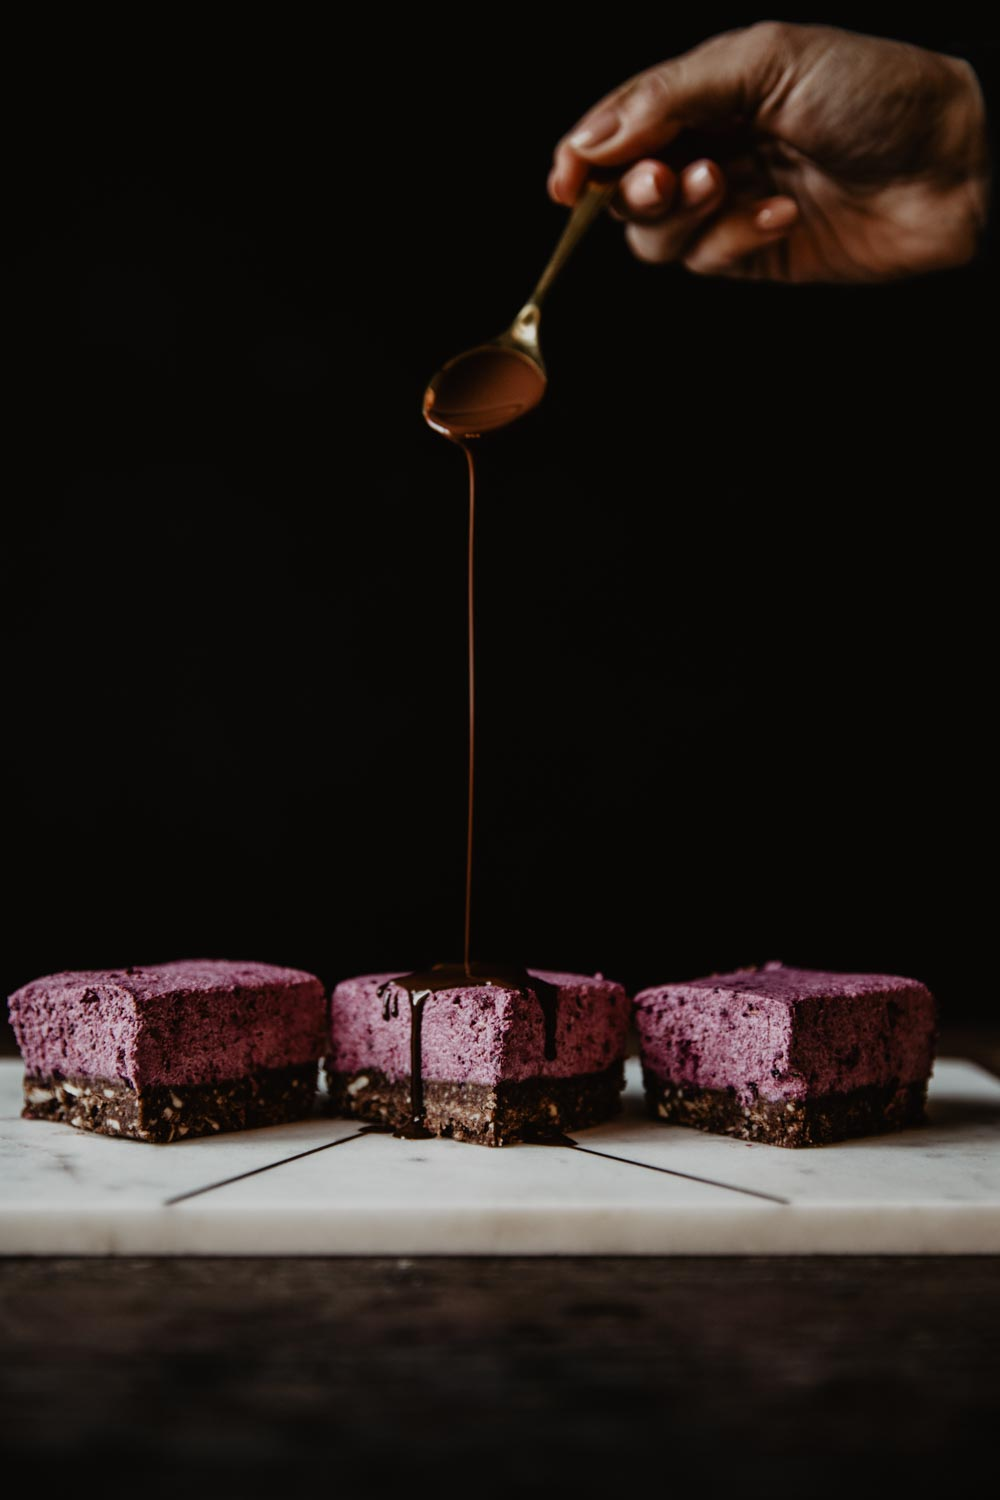 Vegan Berry Cheesecake & facts about my nutrition | You Rock My Life